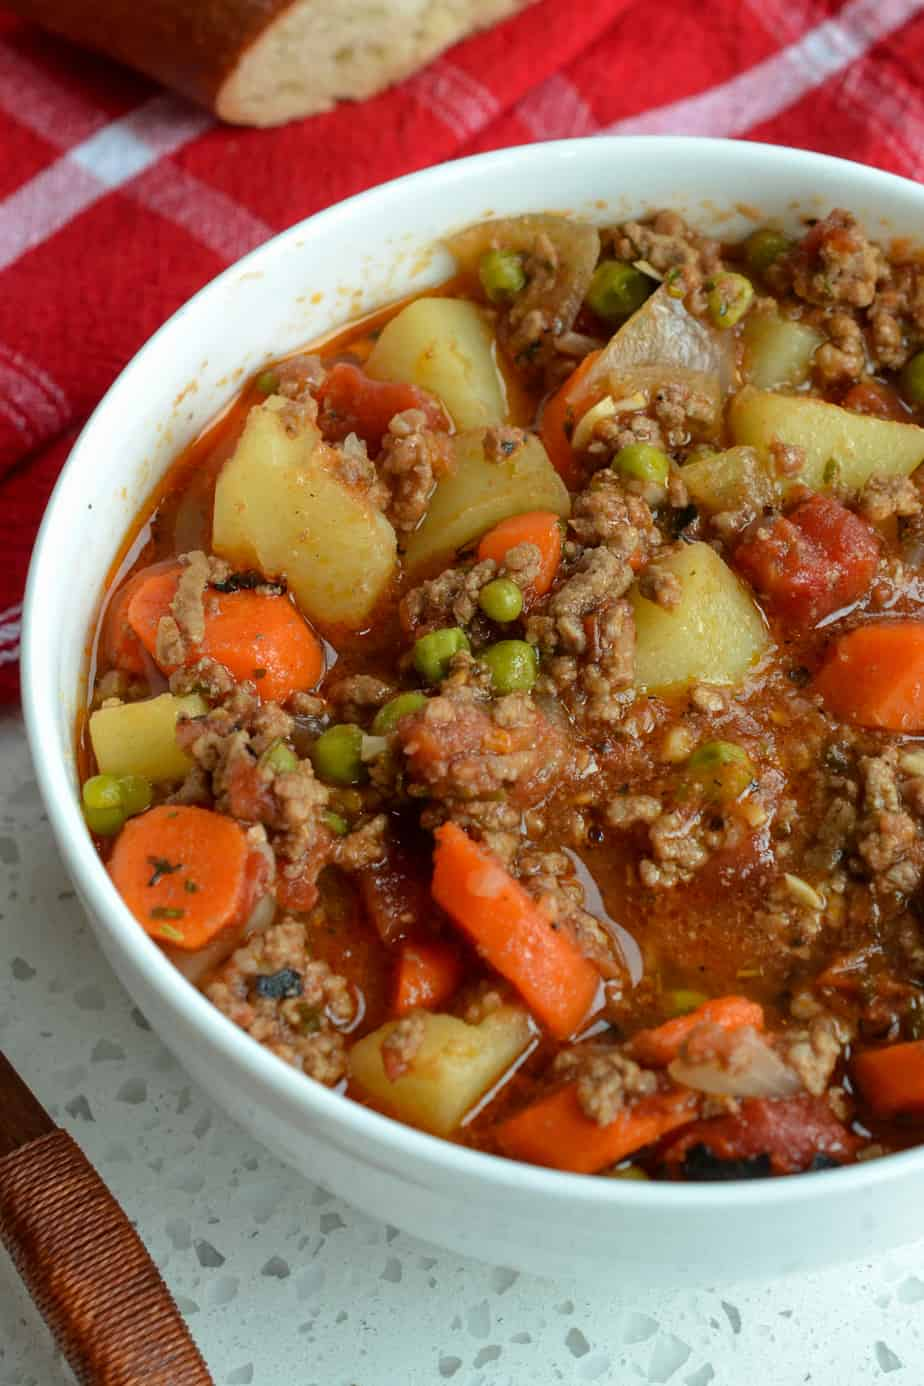 This fun and easy Hamburger Stew recipe comes together quite quickly making it doable for a weeknight meal.